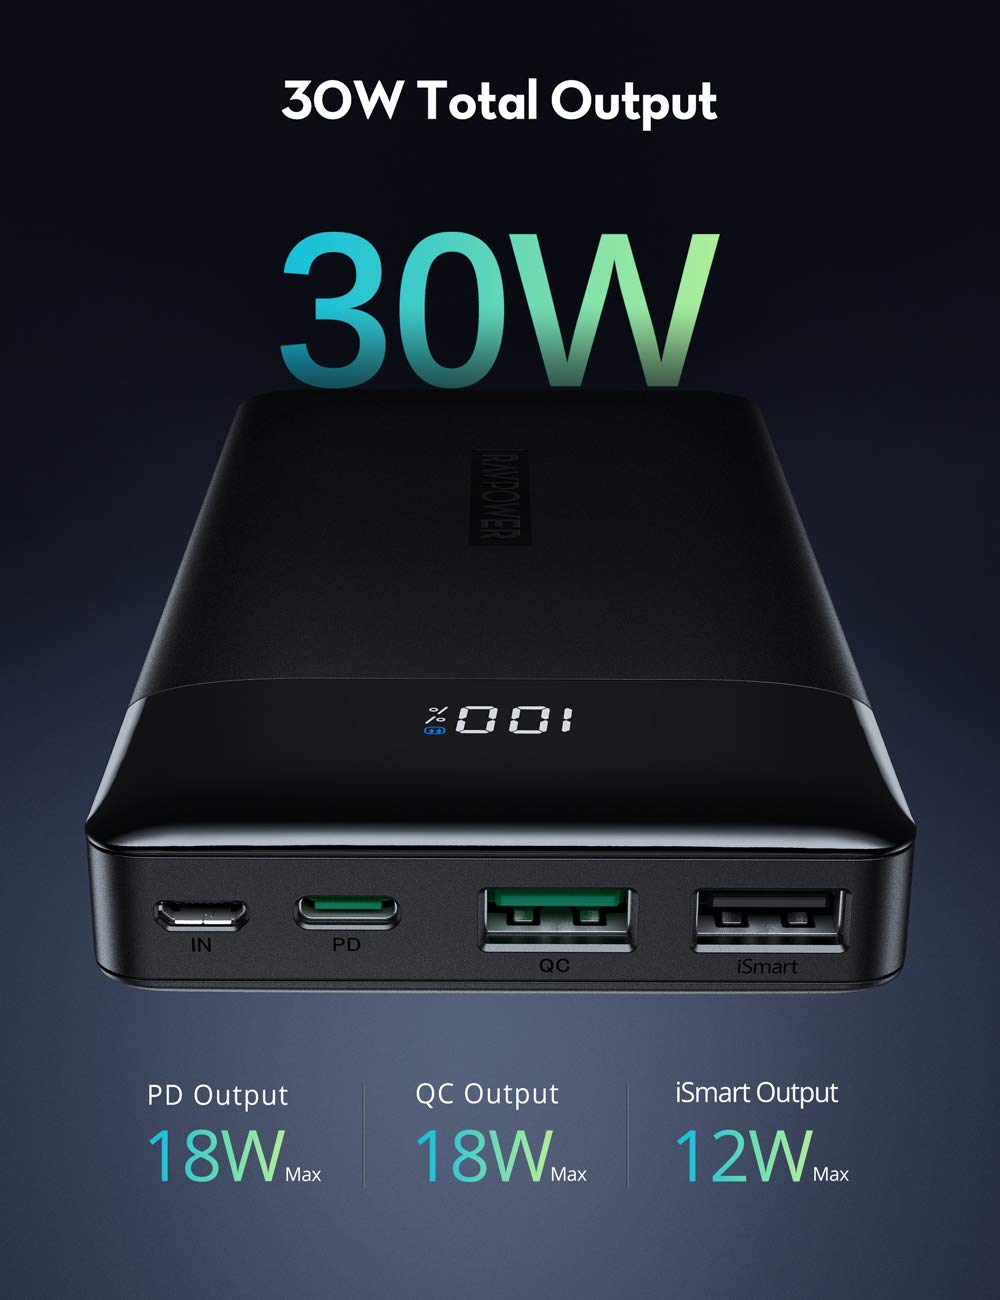 Ultra Compact Phone Charger Compatible with iPhone Xs X 8 7 6 Samsung Galaxy S9 Note 9 iPad Tablet RAVPower 30W High-Speed Tri-Output with LED Display PD 3.0 15000mAh Power Bank Portable Charger